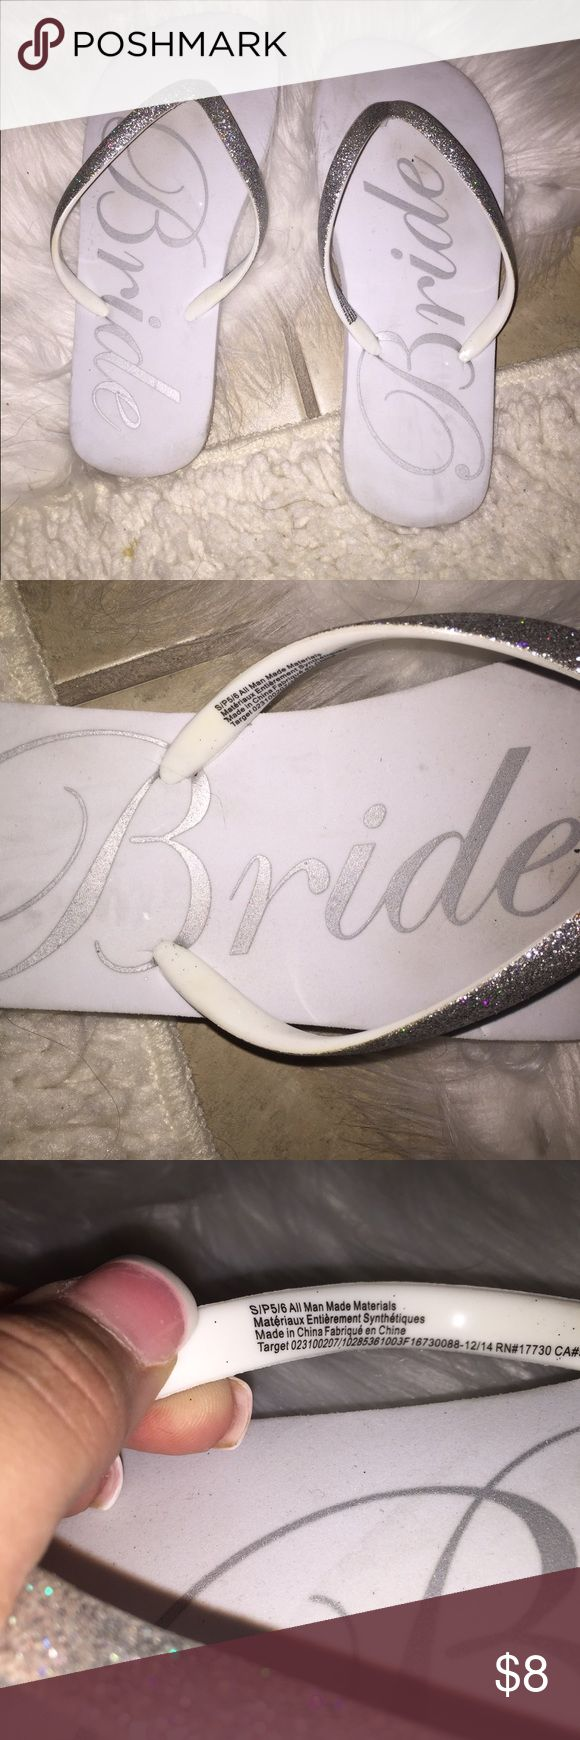 Bride white silver glitter flip flop sz S 5/6 Bride white silver glitter flip flop. Women's sz S (5/6). Only worn once, but as everyone knows white flip flops are very hard to keep clean. Reflects in price, offers accepted! Purchased from Target. Gillagan O' Malley bridal collection. Fast shipping! Gilligan & O'Malley Shoes Sandals